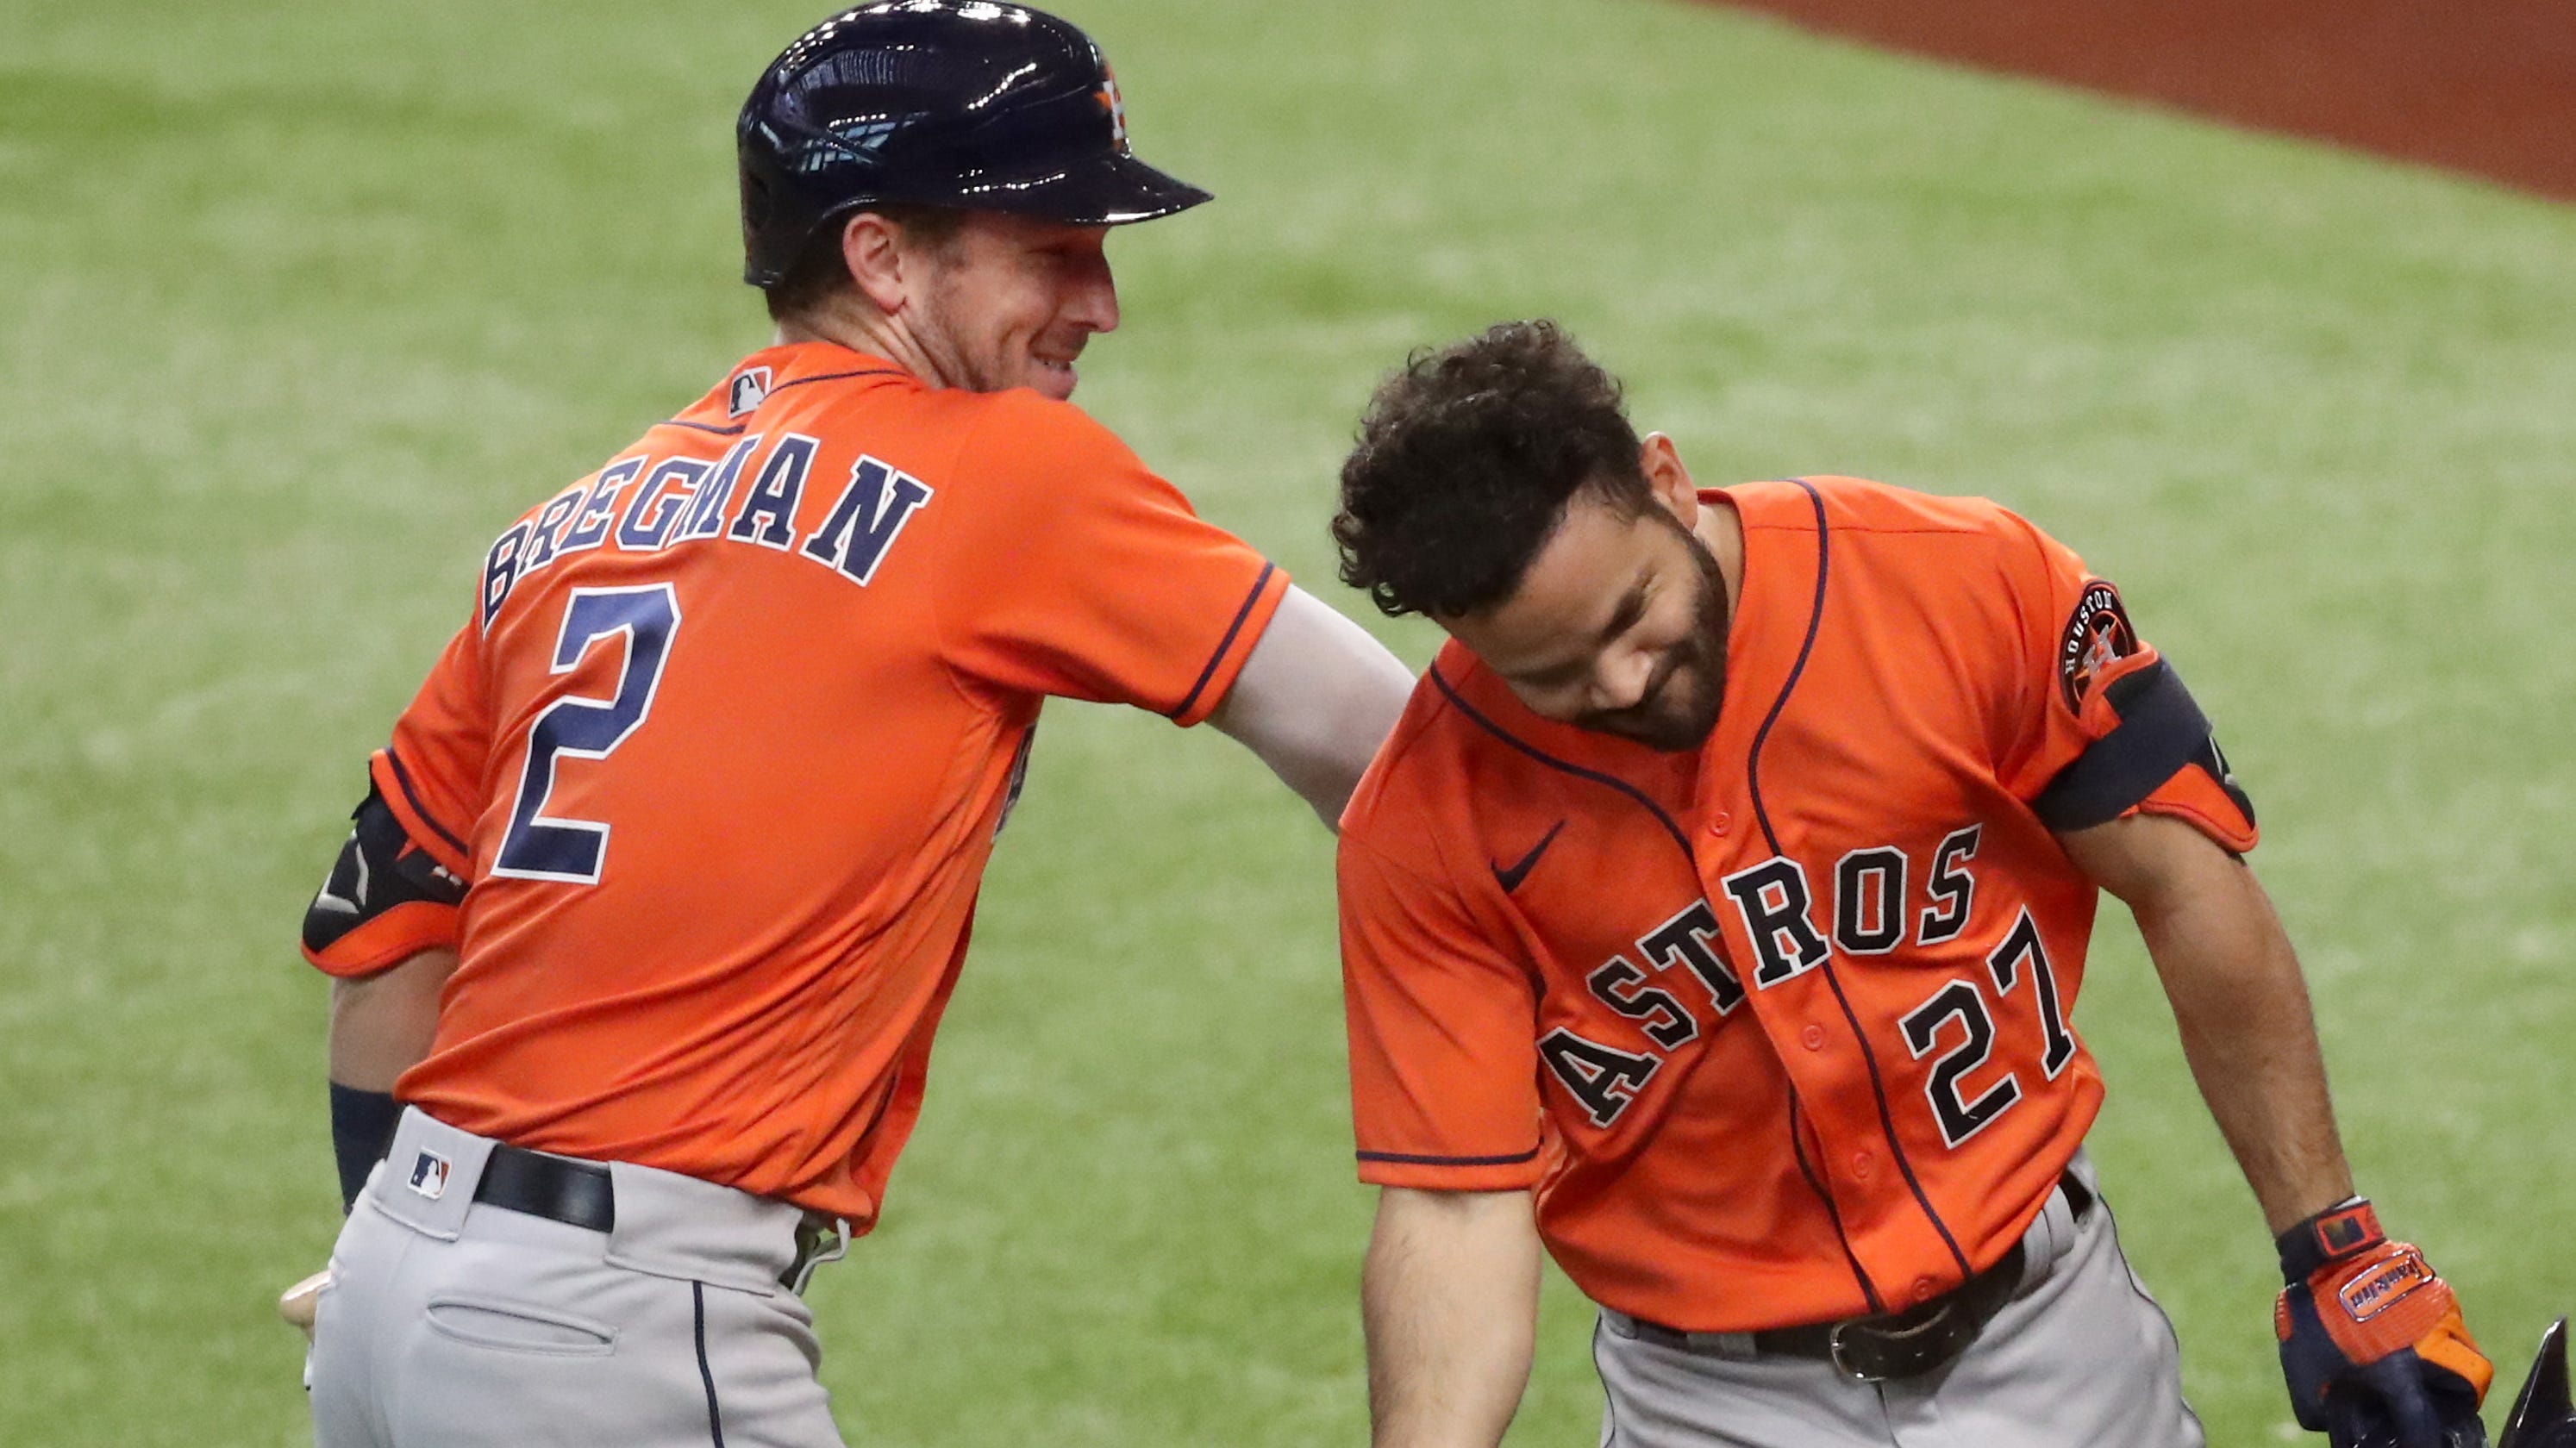 MLB playoffs live updates: Twins-Astros kicks off American League Wild Card series